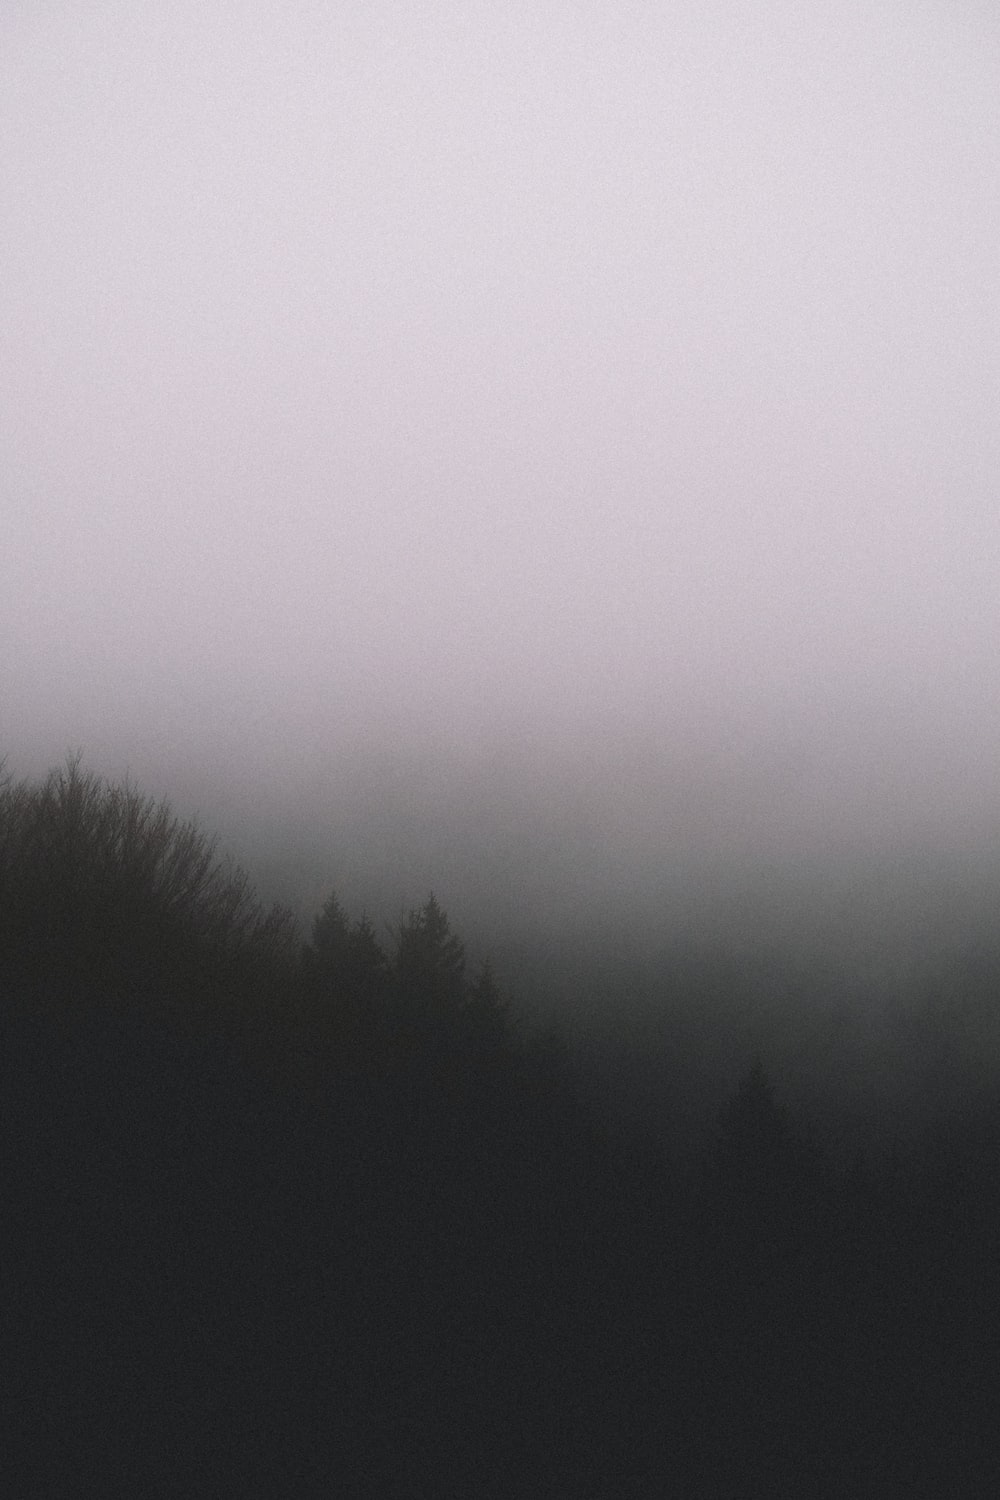 silhouette of trees with fog